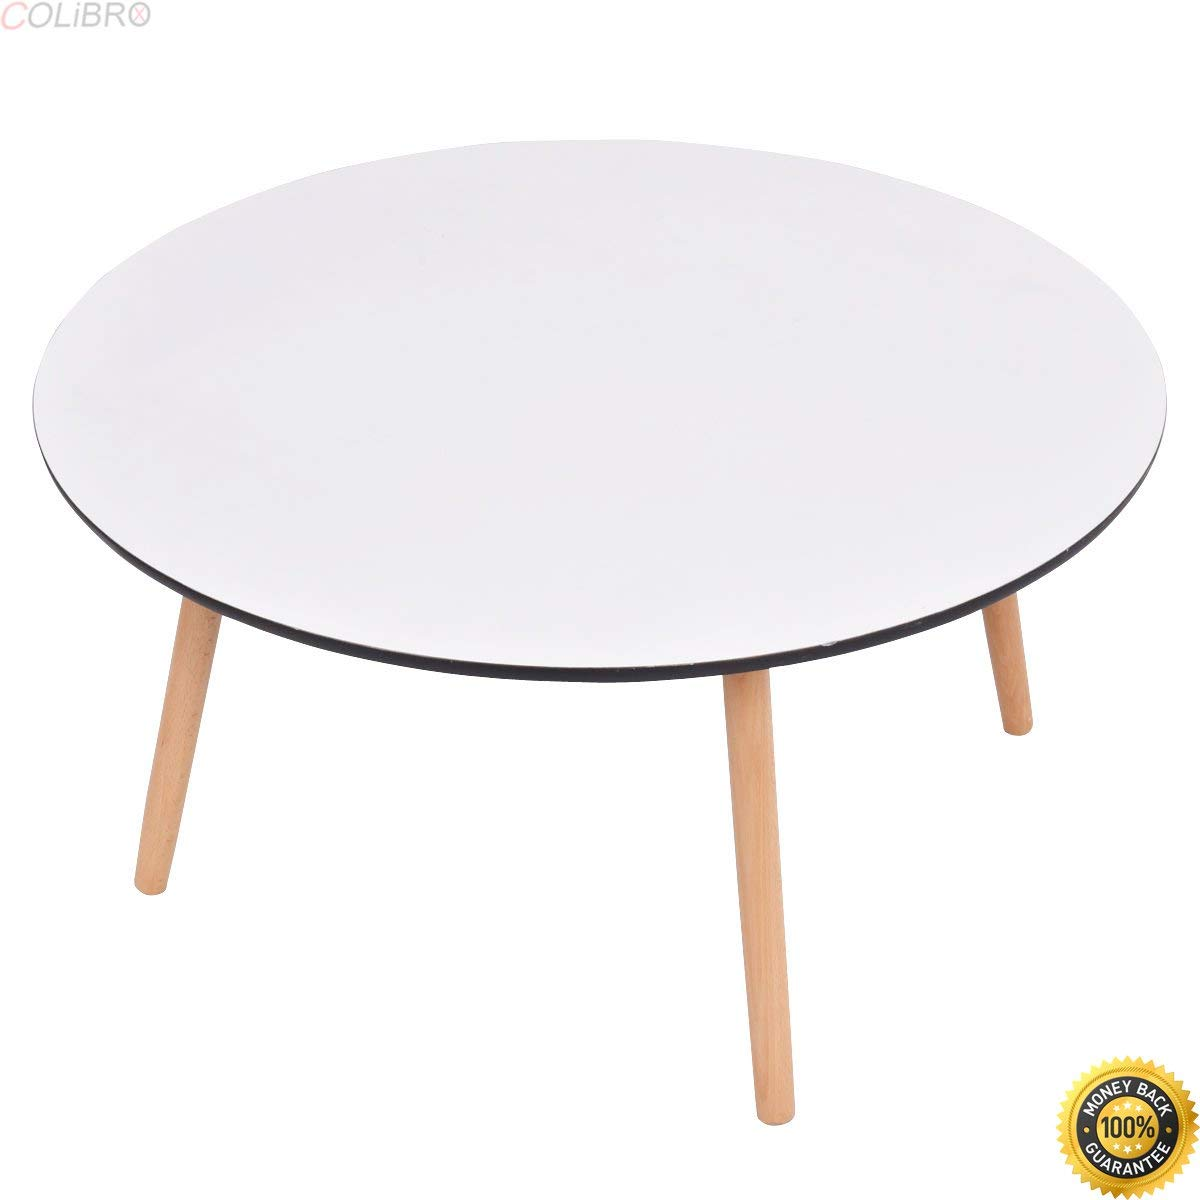 COLIBROX-Modern Round Coffee Tea Table Living Room Furniture Home Decor White New,furniture tables,dining table,round kitchen tables,new and modern dining table